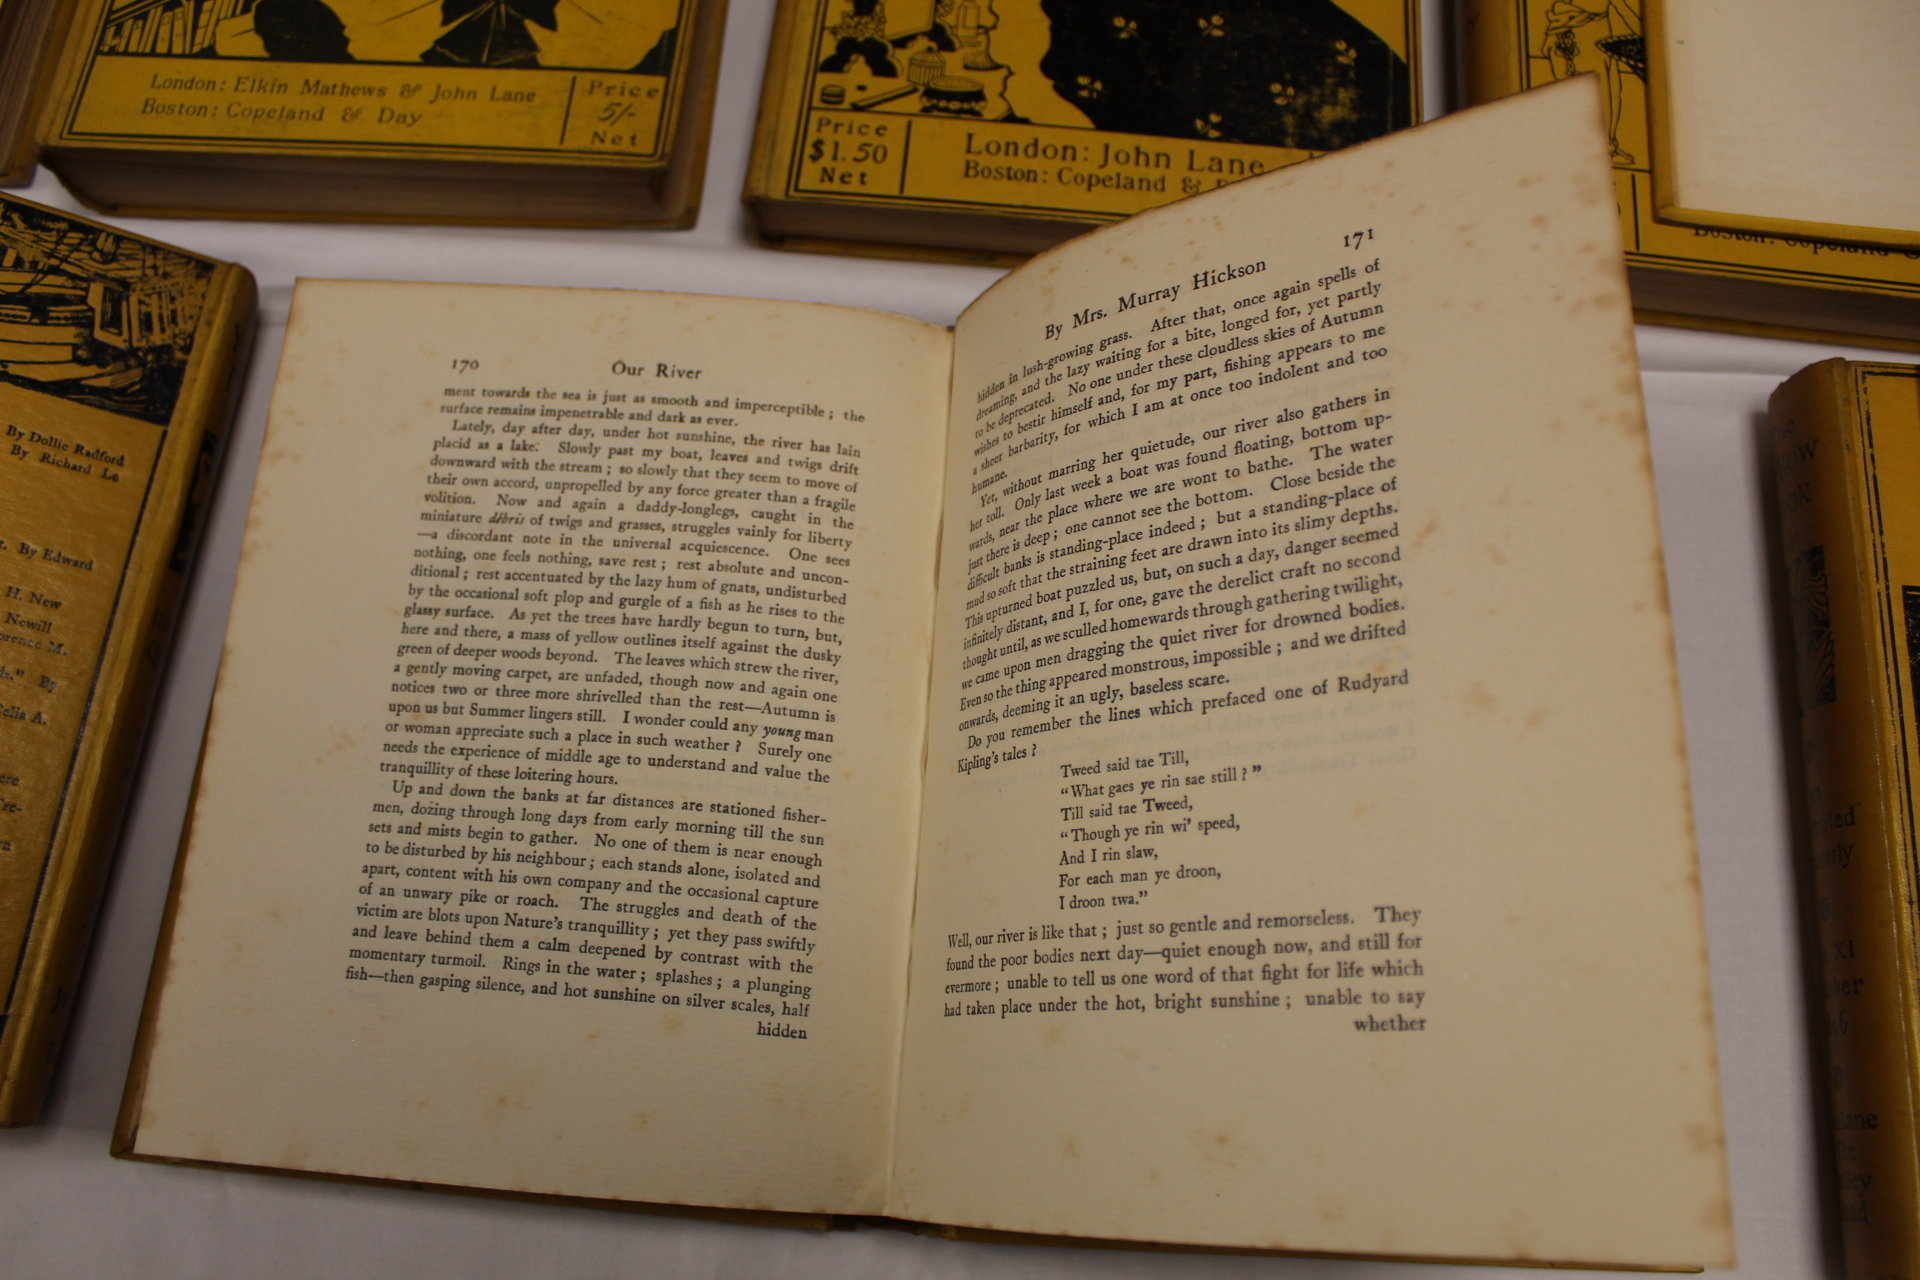 THE YELLOW BOOK.An Illustrated Quarterly. A set of 13 vols., many fine illus. Small quarto. - Image 15 of 45